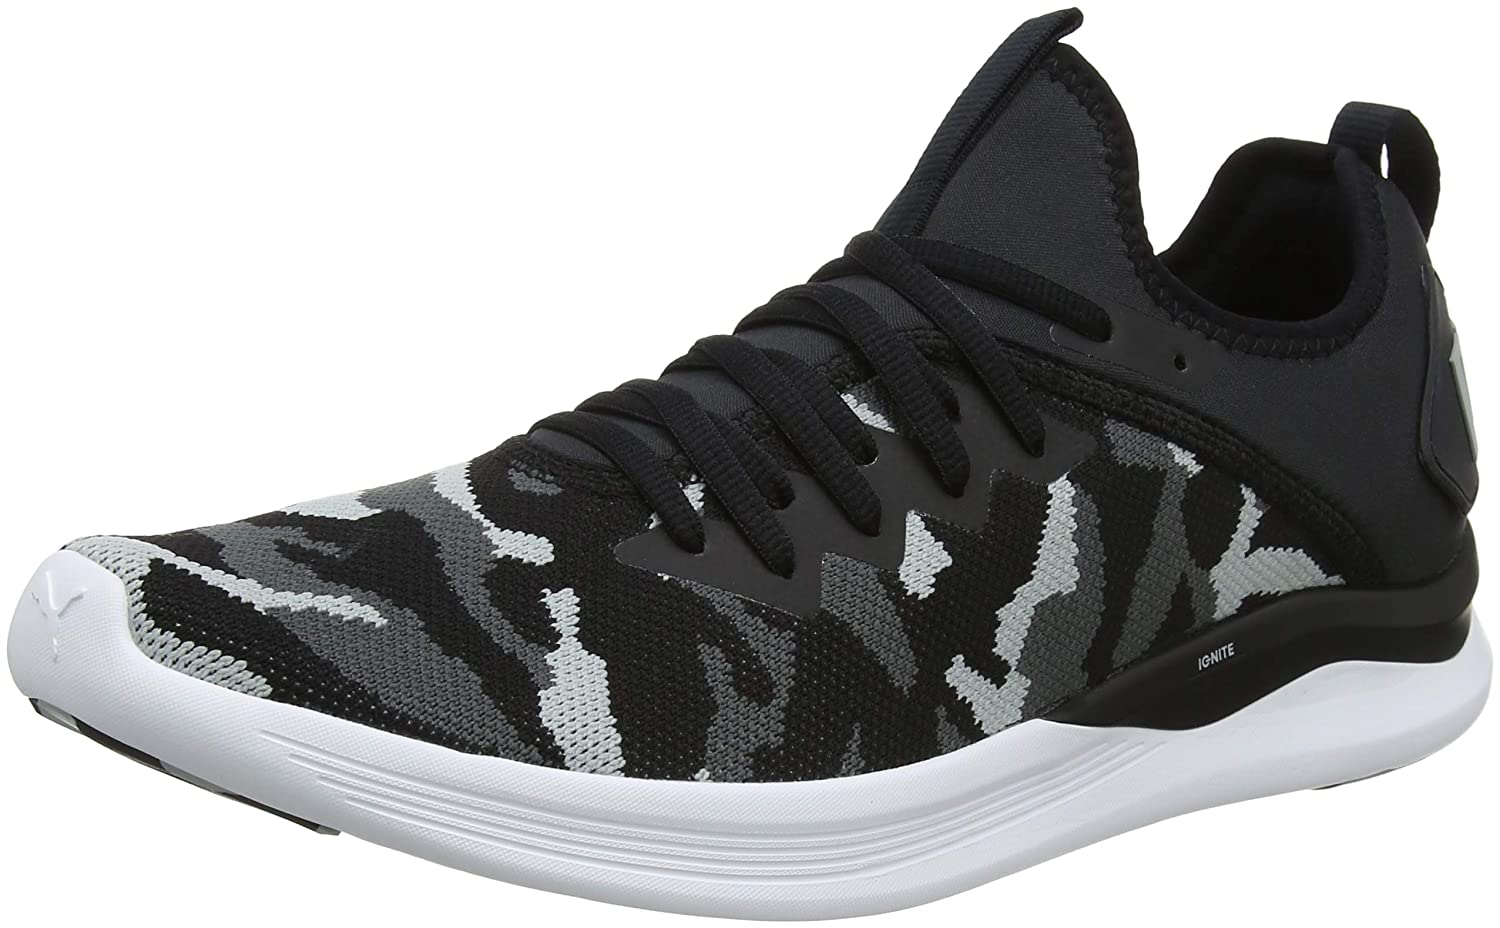 Puma Ignite Flash Camo, Zapatillas de Entrenamiento para Hombre 41 EU|Negro (Puma Black-iron Gate-quarry 02)